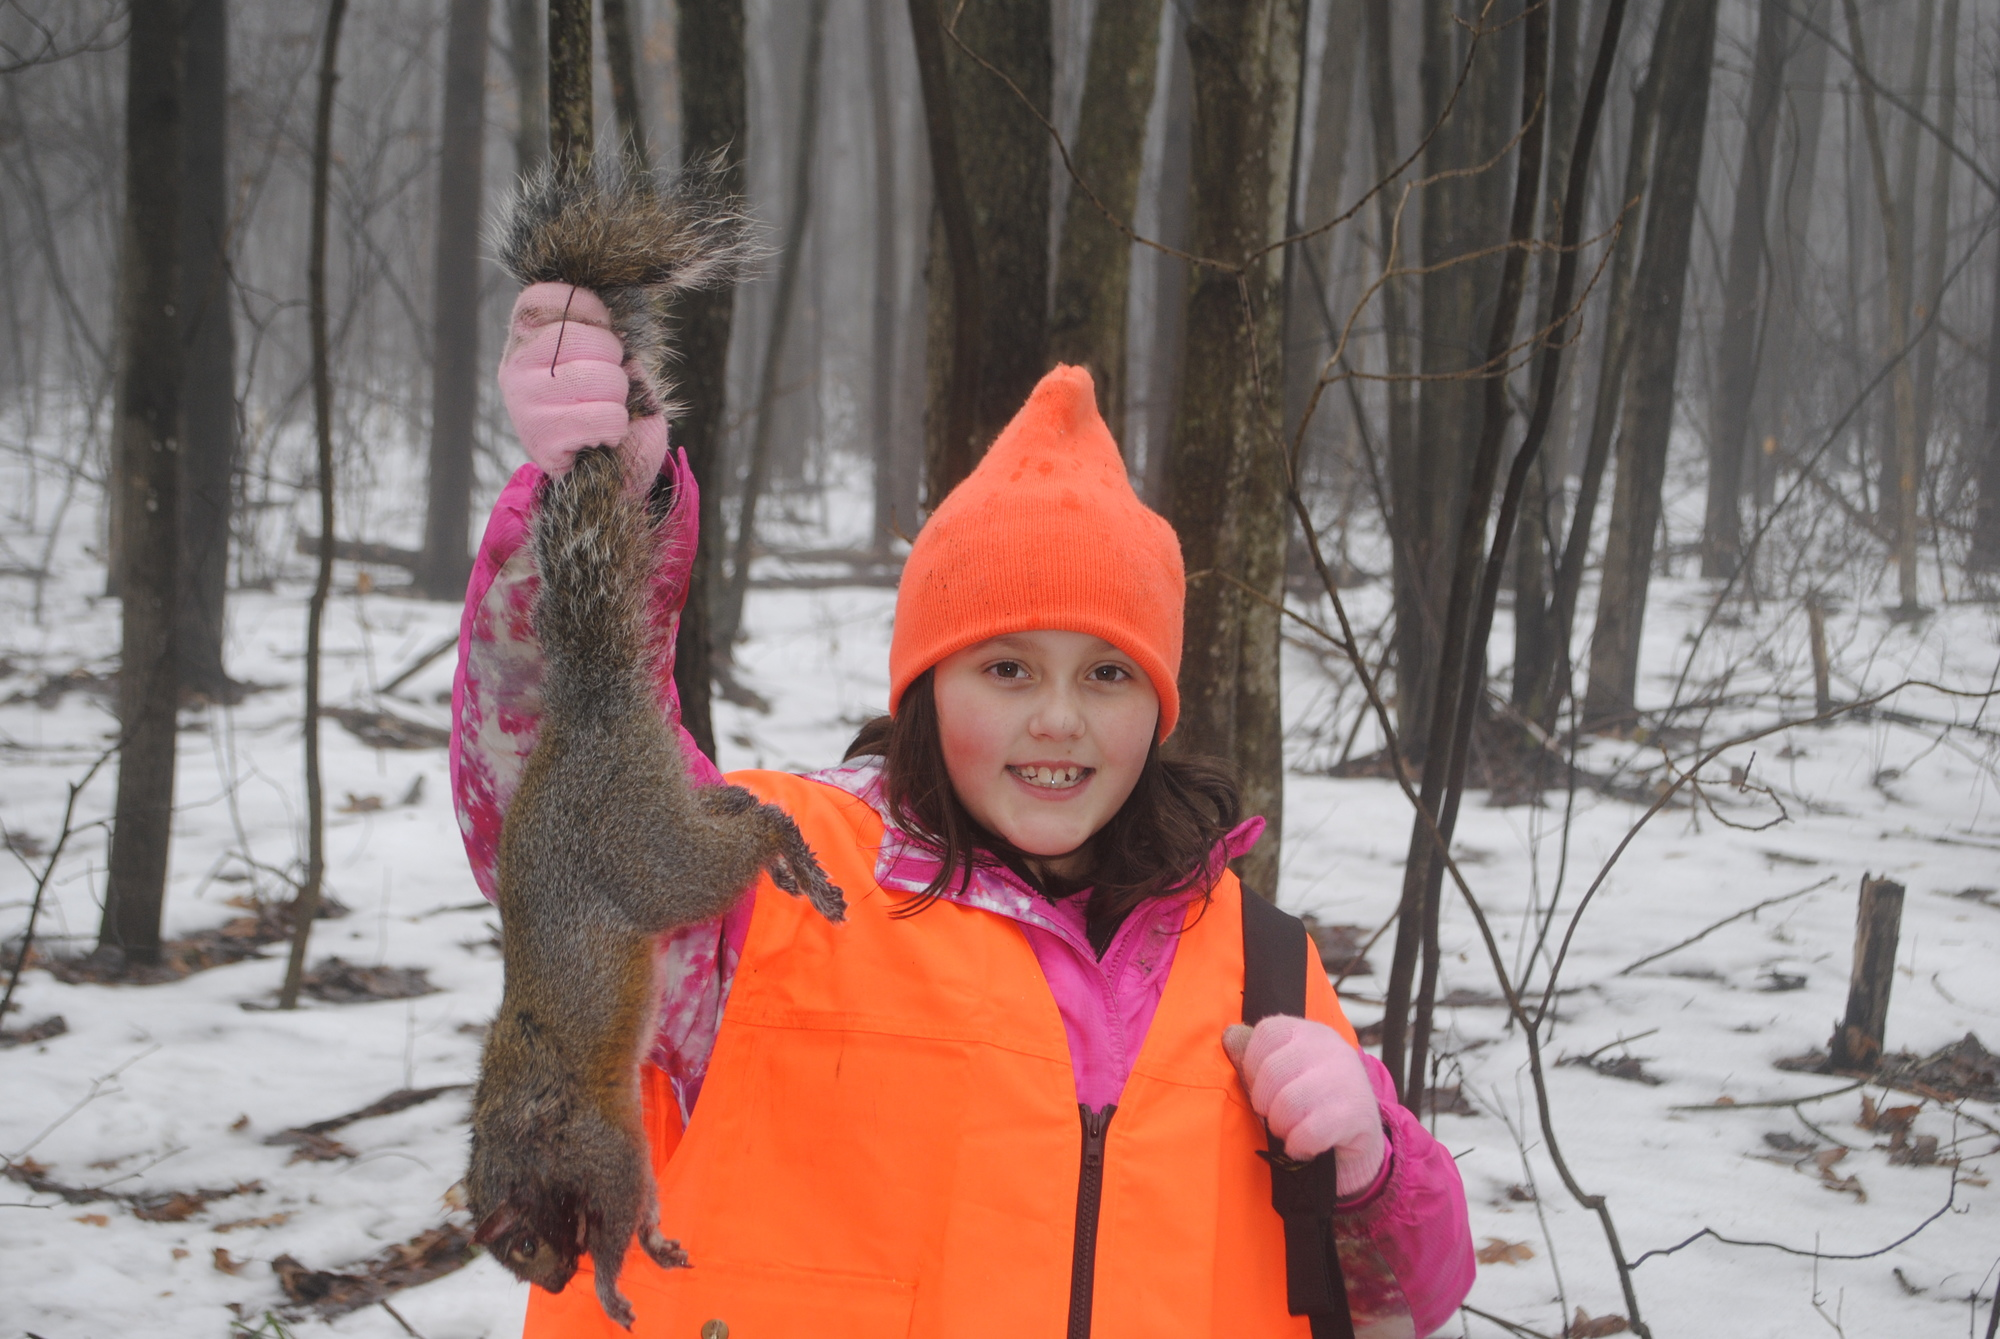 Destiny Ery, 10, shows off a squirrel she took at the Flat River State Game Area near Belding, which is located northeast of Grand Rapids.